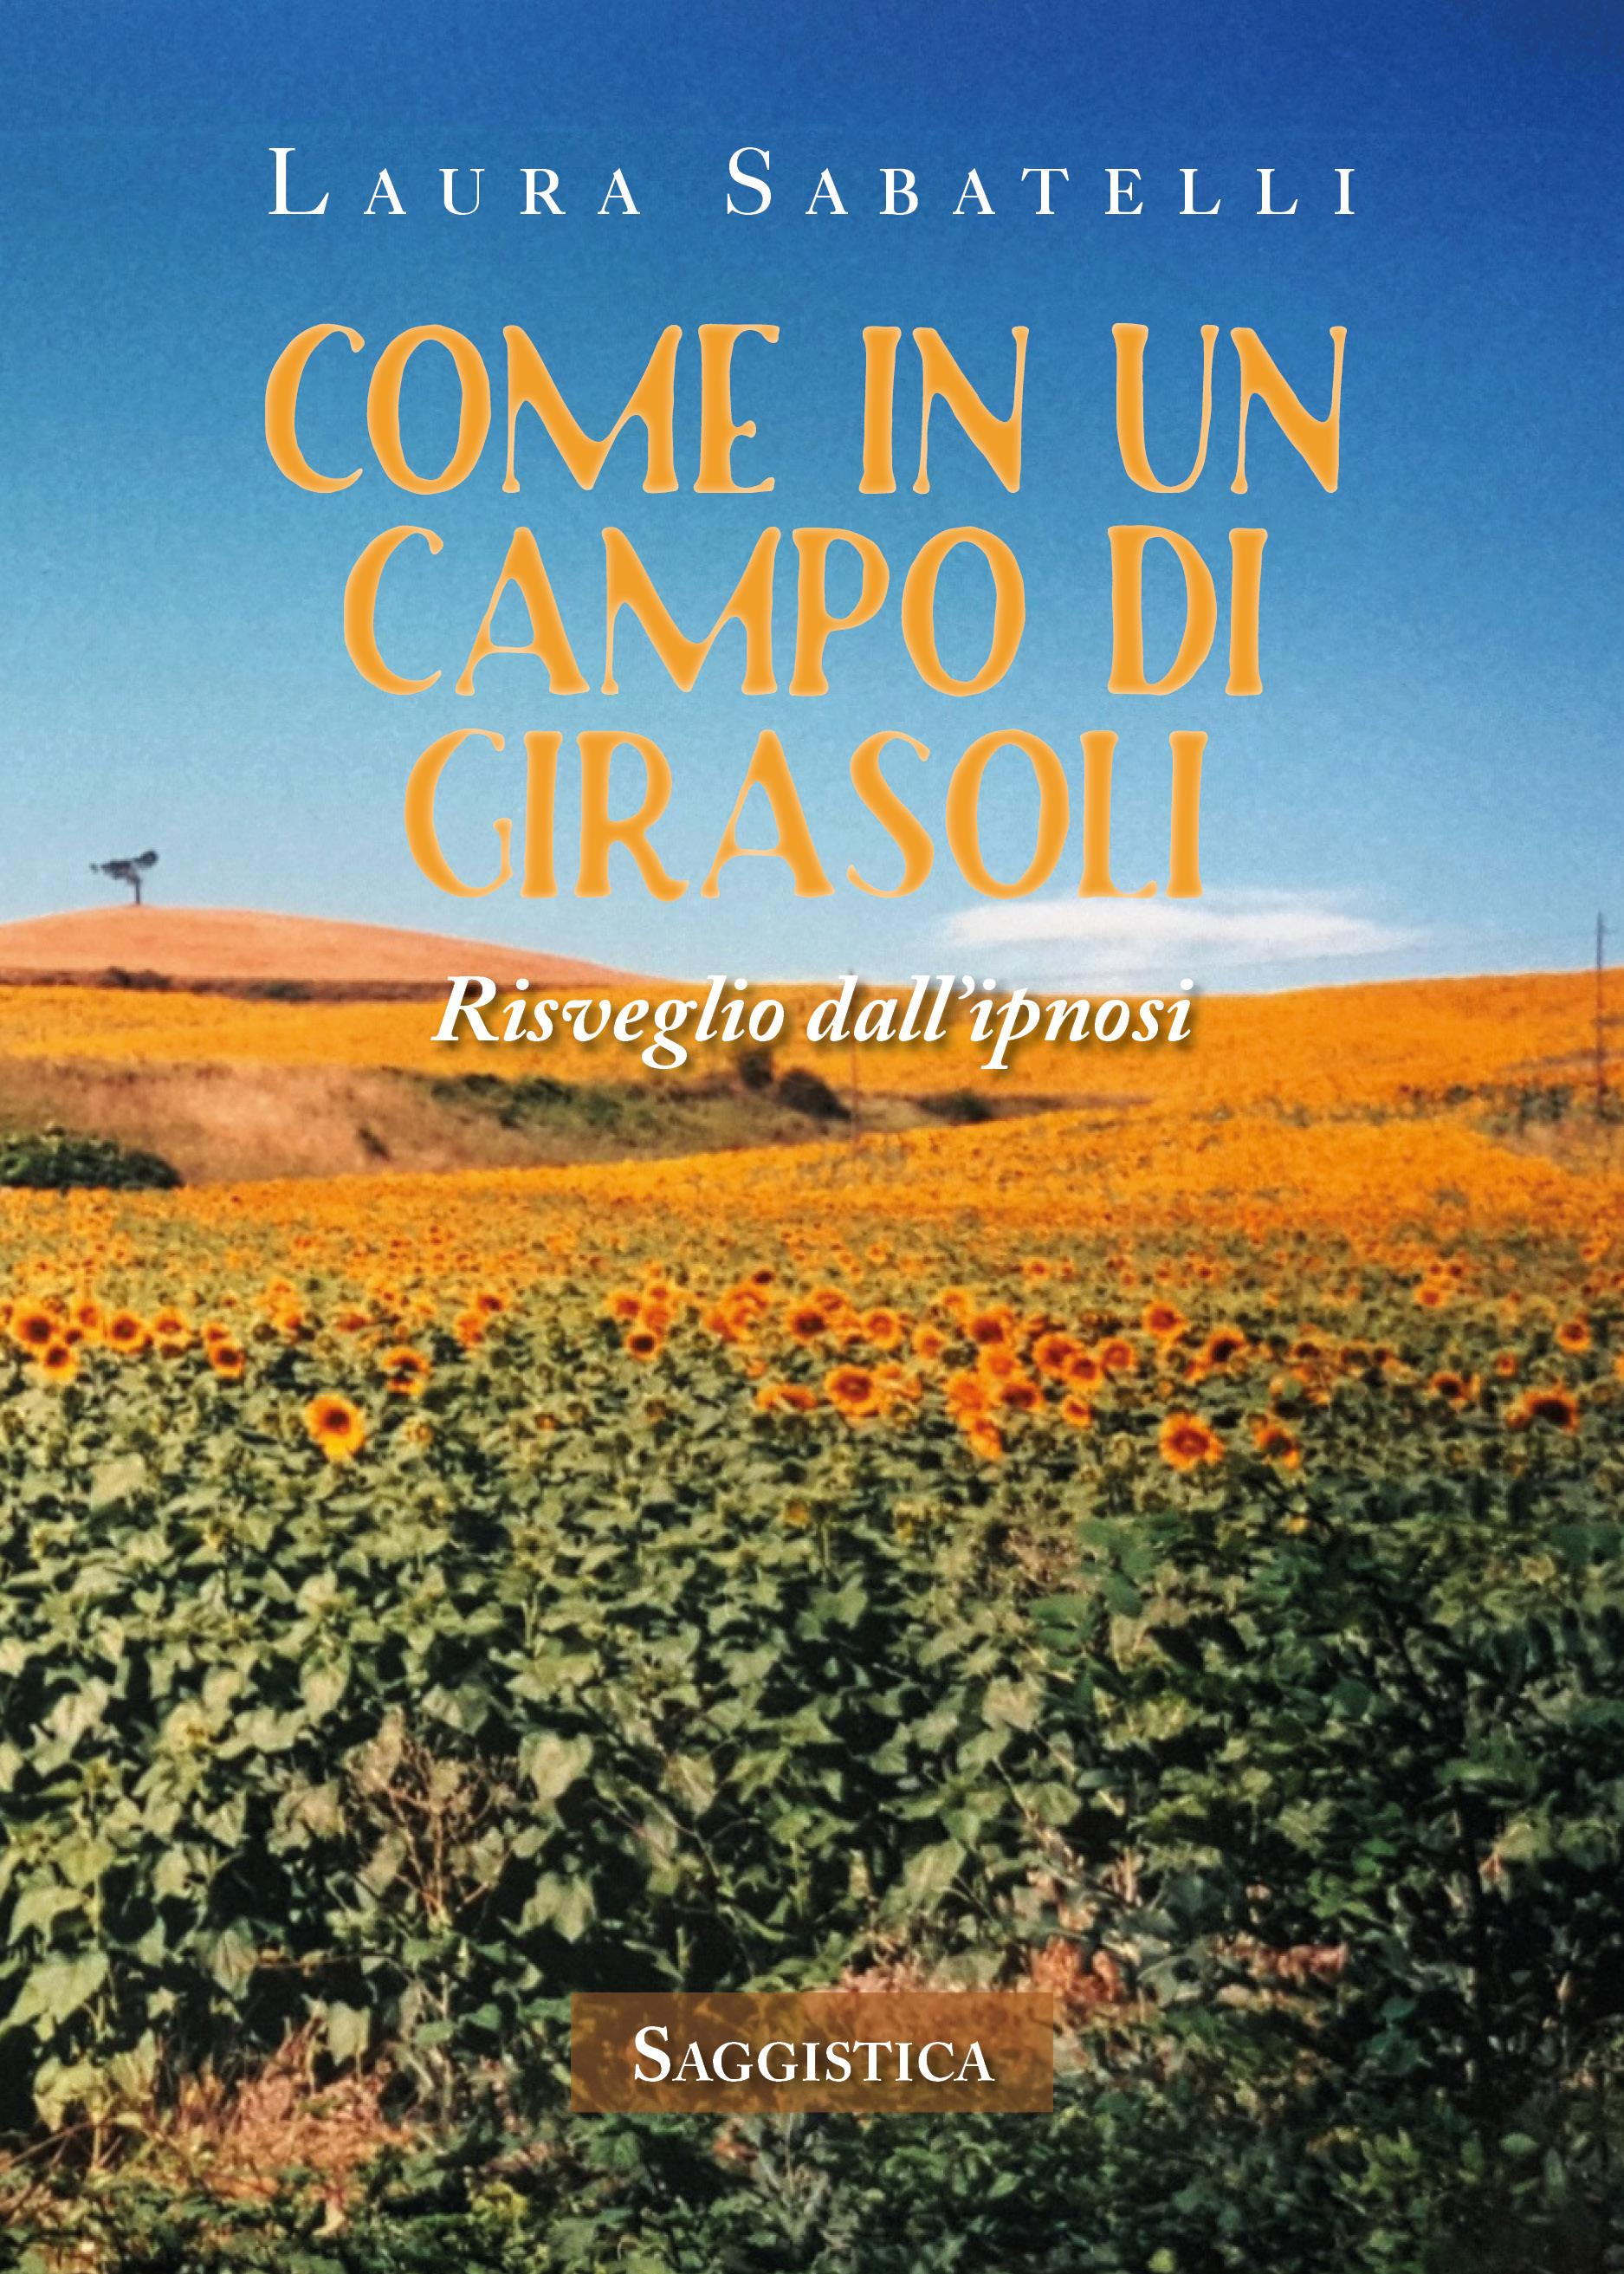 COME IN UN CAMPO DI GIRASOLI